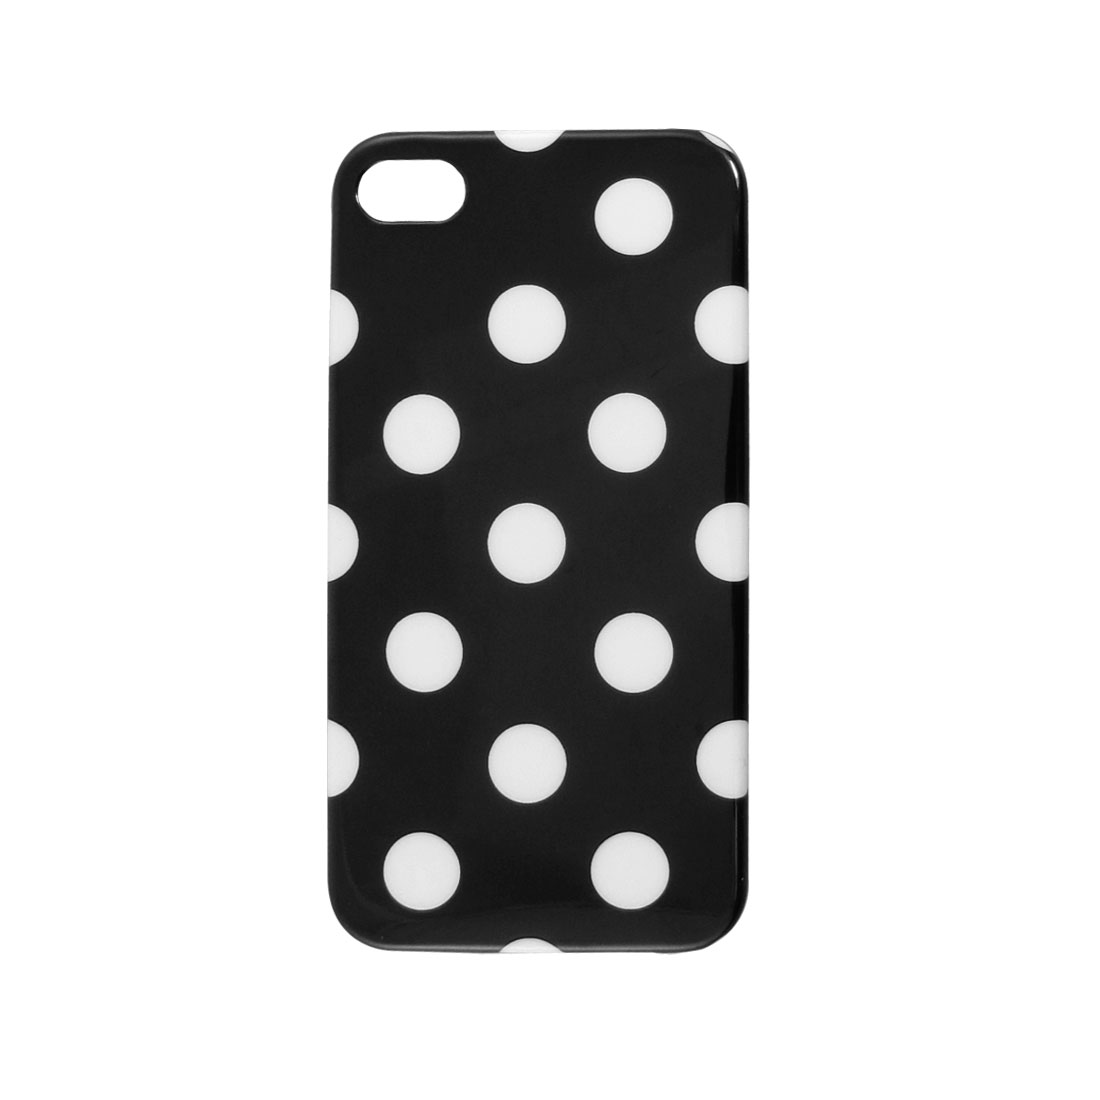 IMD White Dots Decor Black Hard Plastic Back Shell Case Cover for iPhone 4 4G 4S